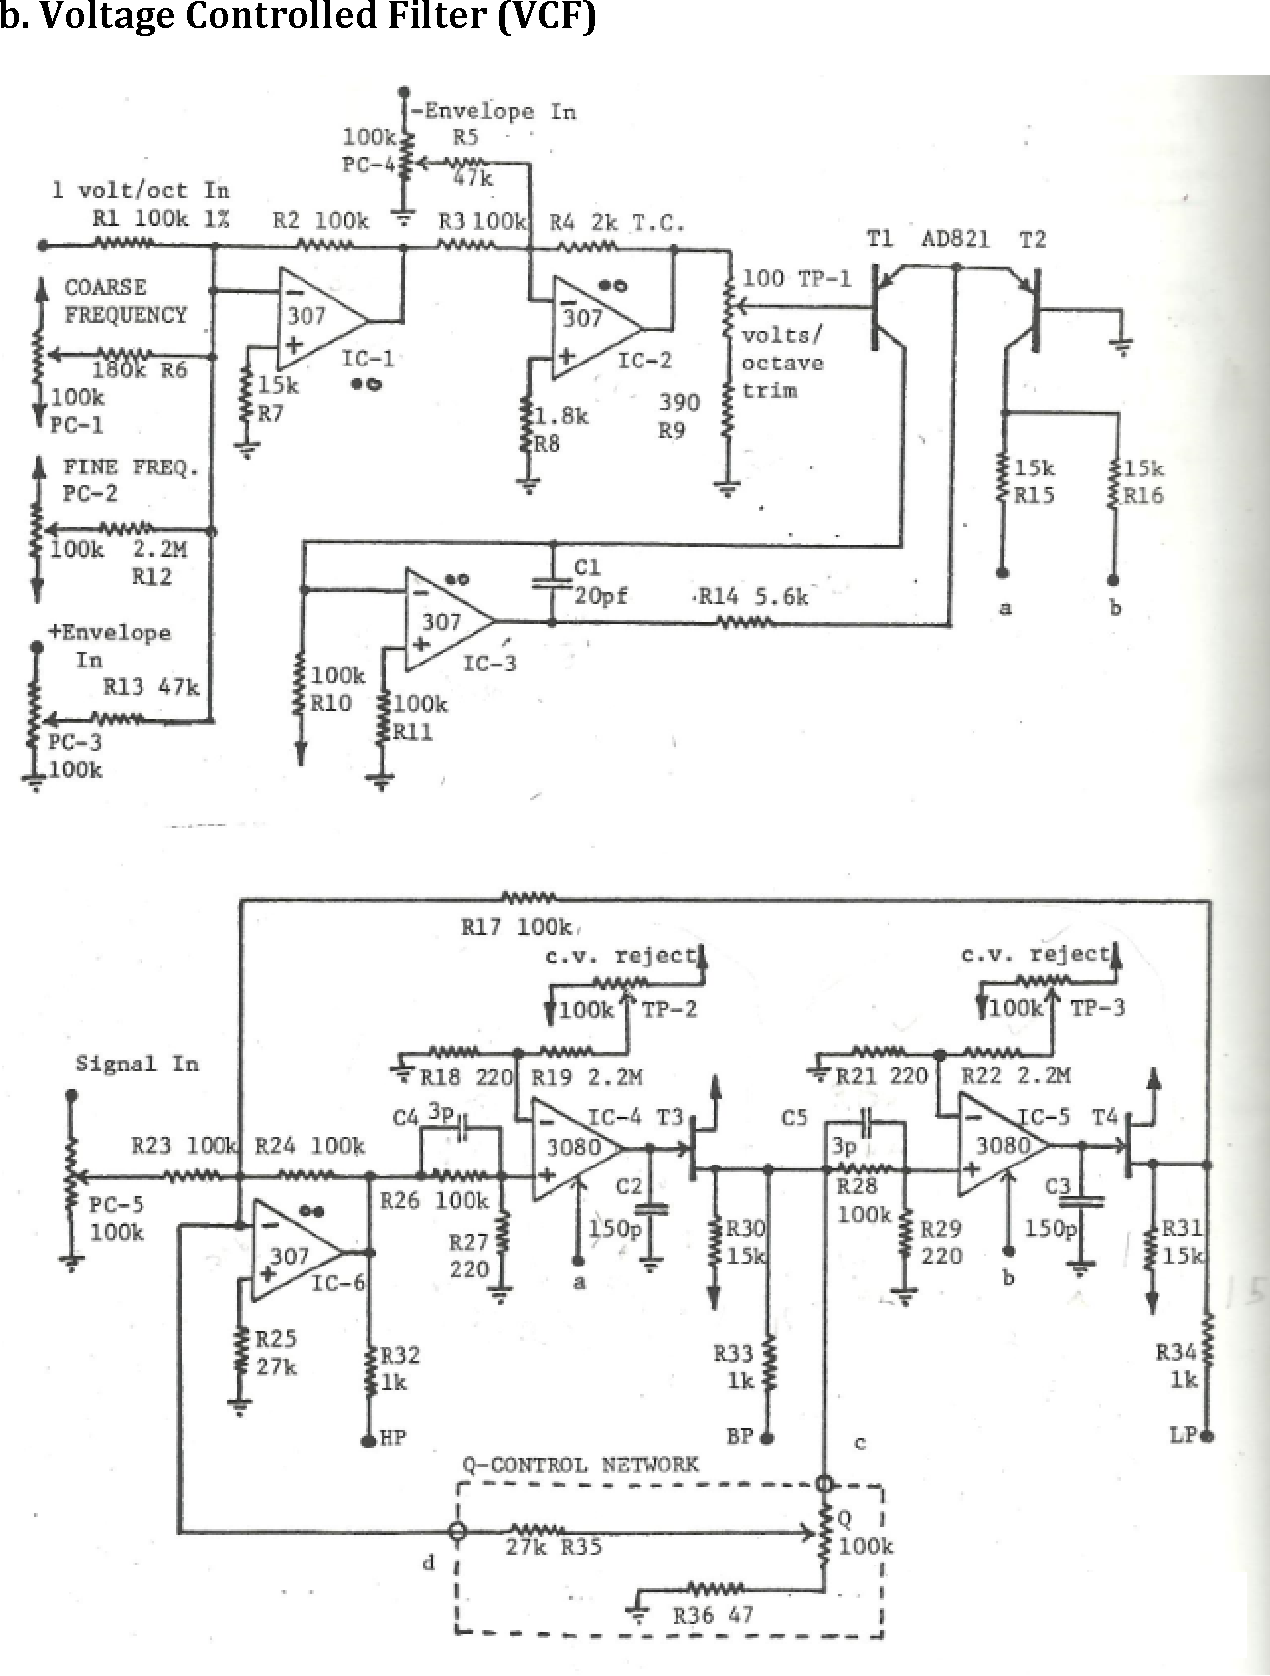 Figure 6 From Analog Synthesizer Project 101 Final Envelope Schematic Voltage Controlled Filter This Is Courtesy Of Electronotes By Bernie